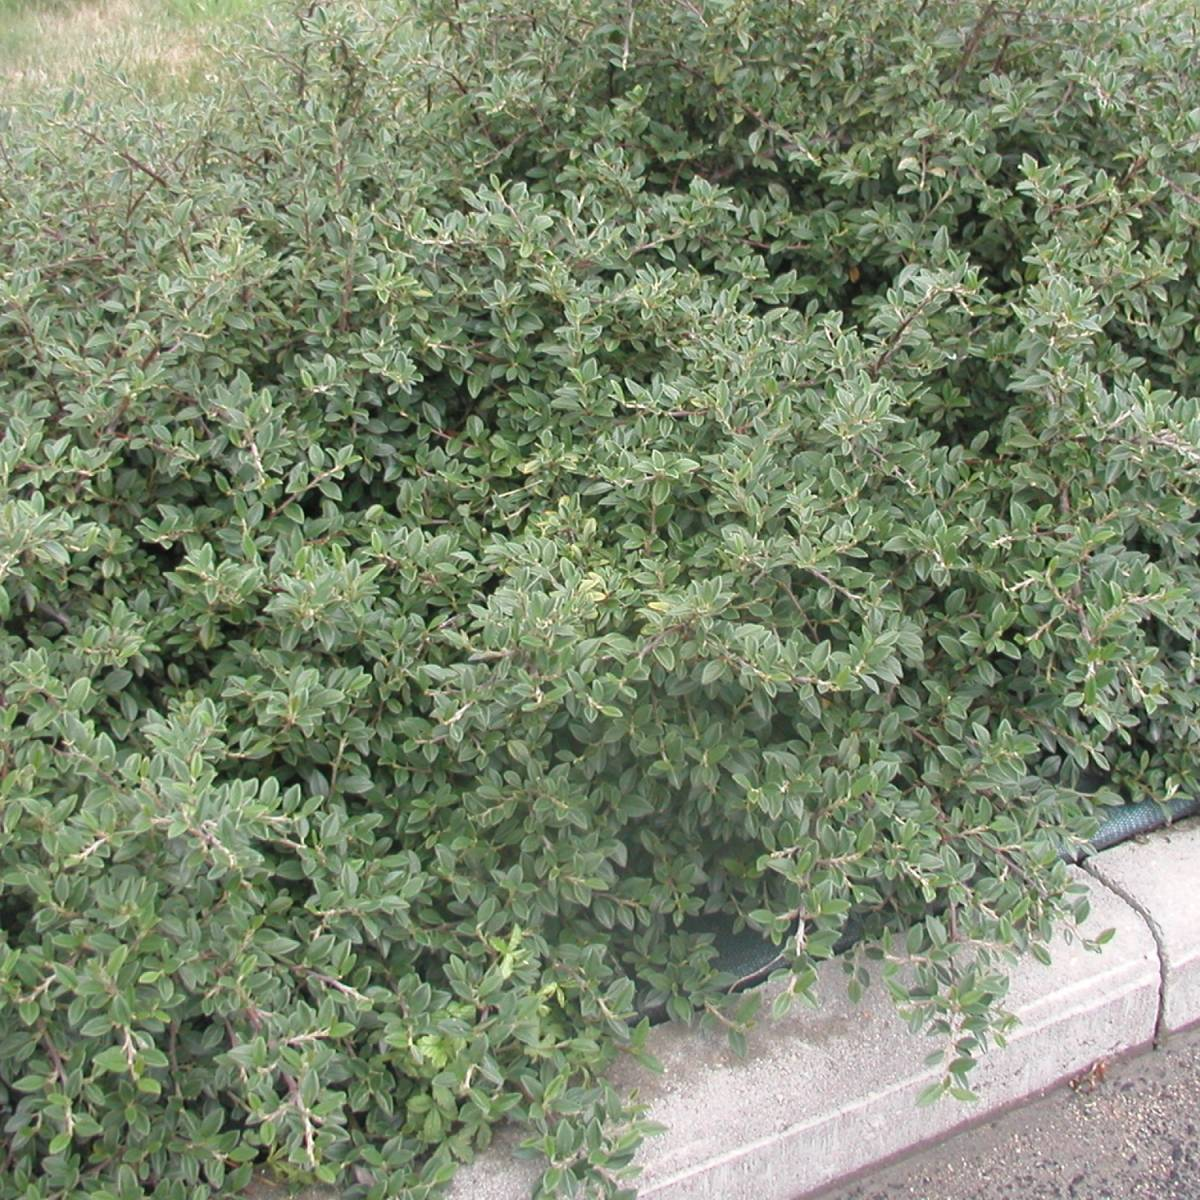 Cotoneaster procumbens queen of carpets maison design - Cotoneaster procumbens queen of carpets ...